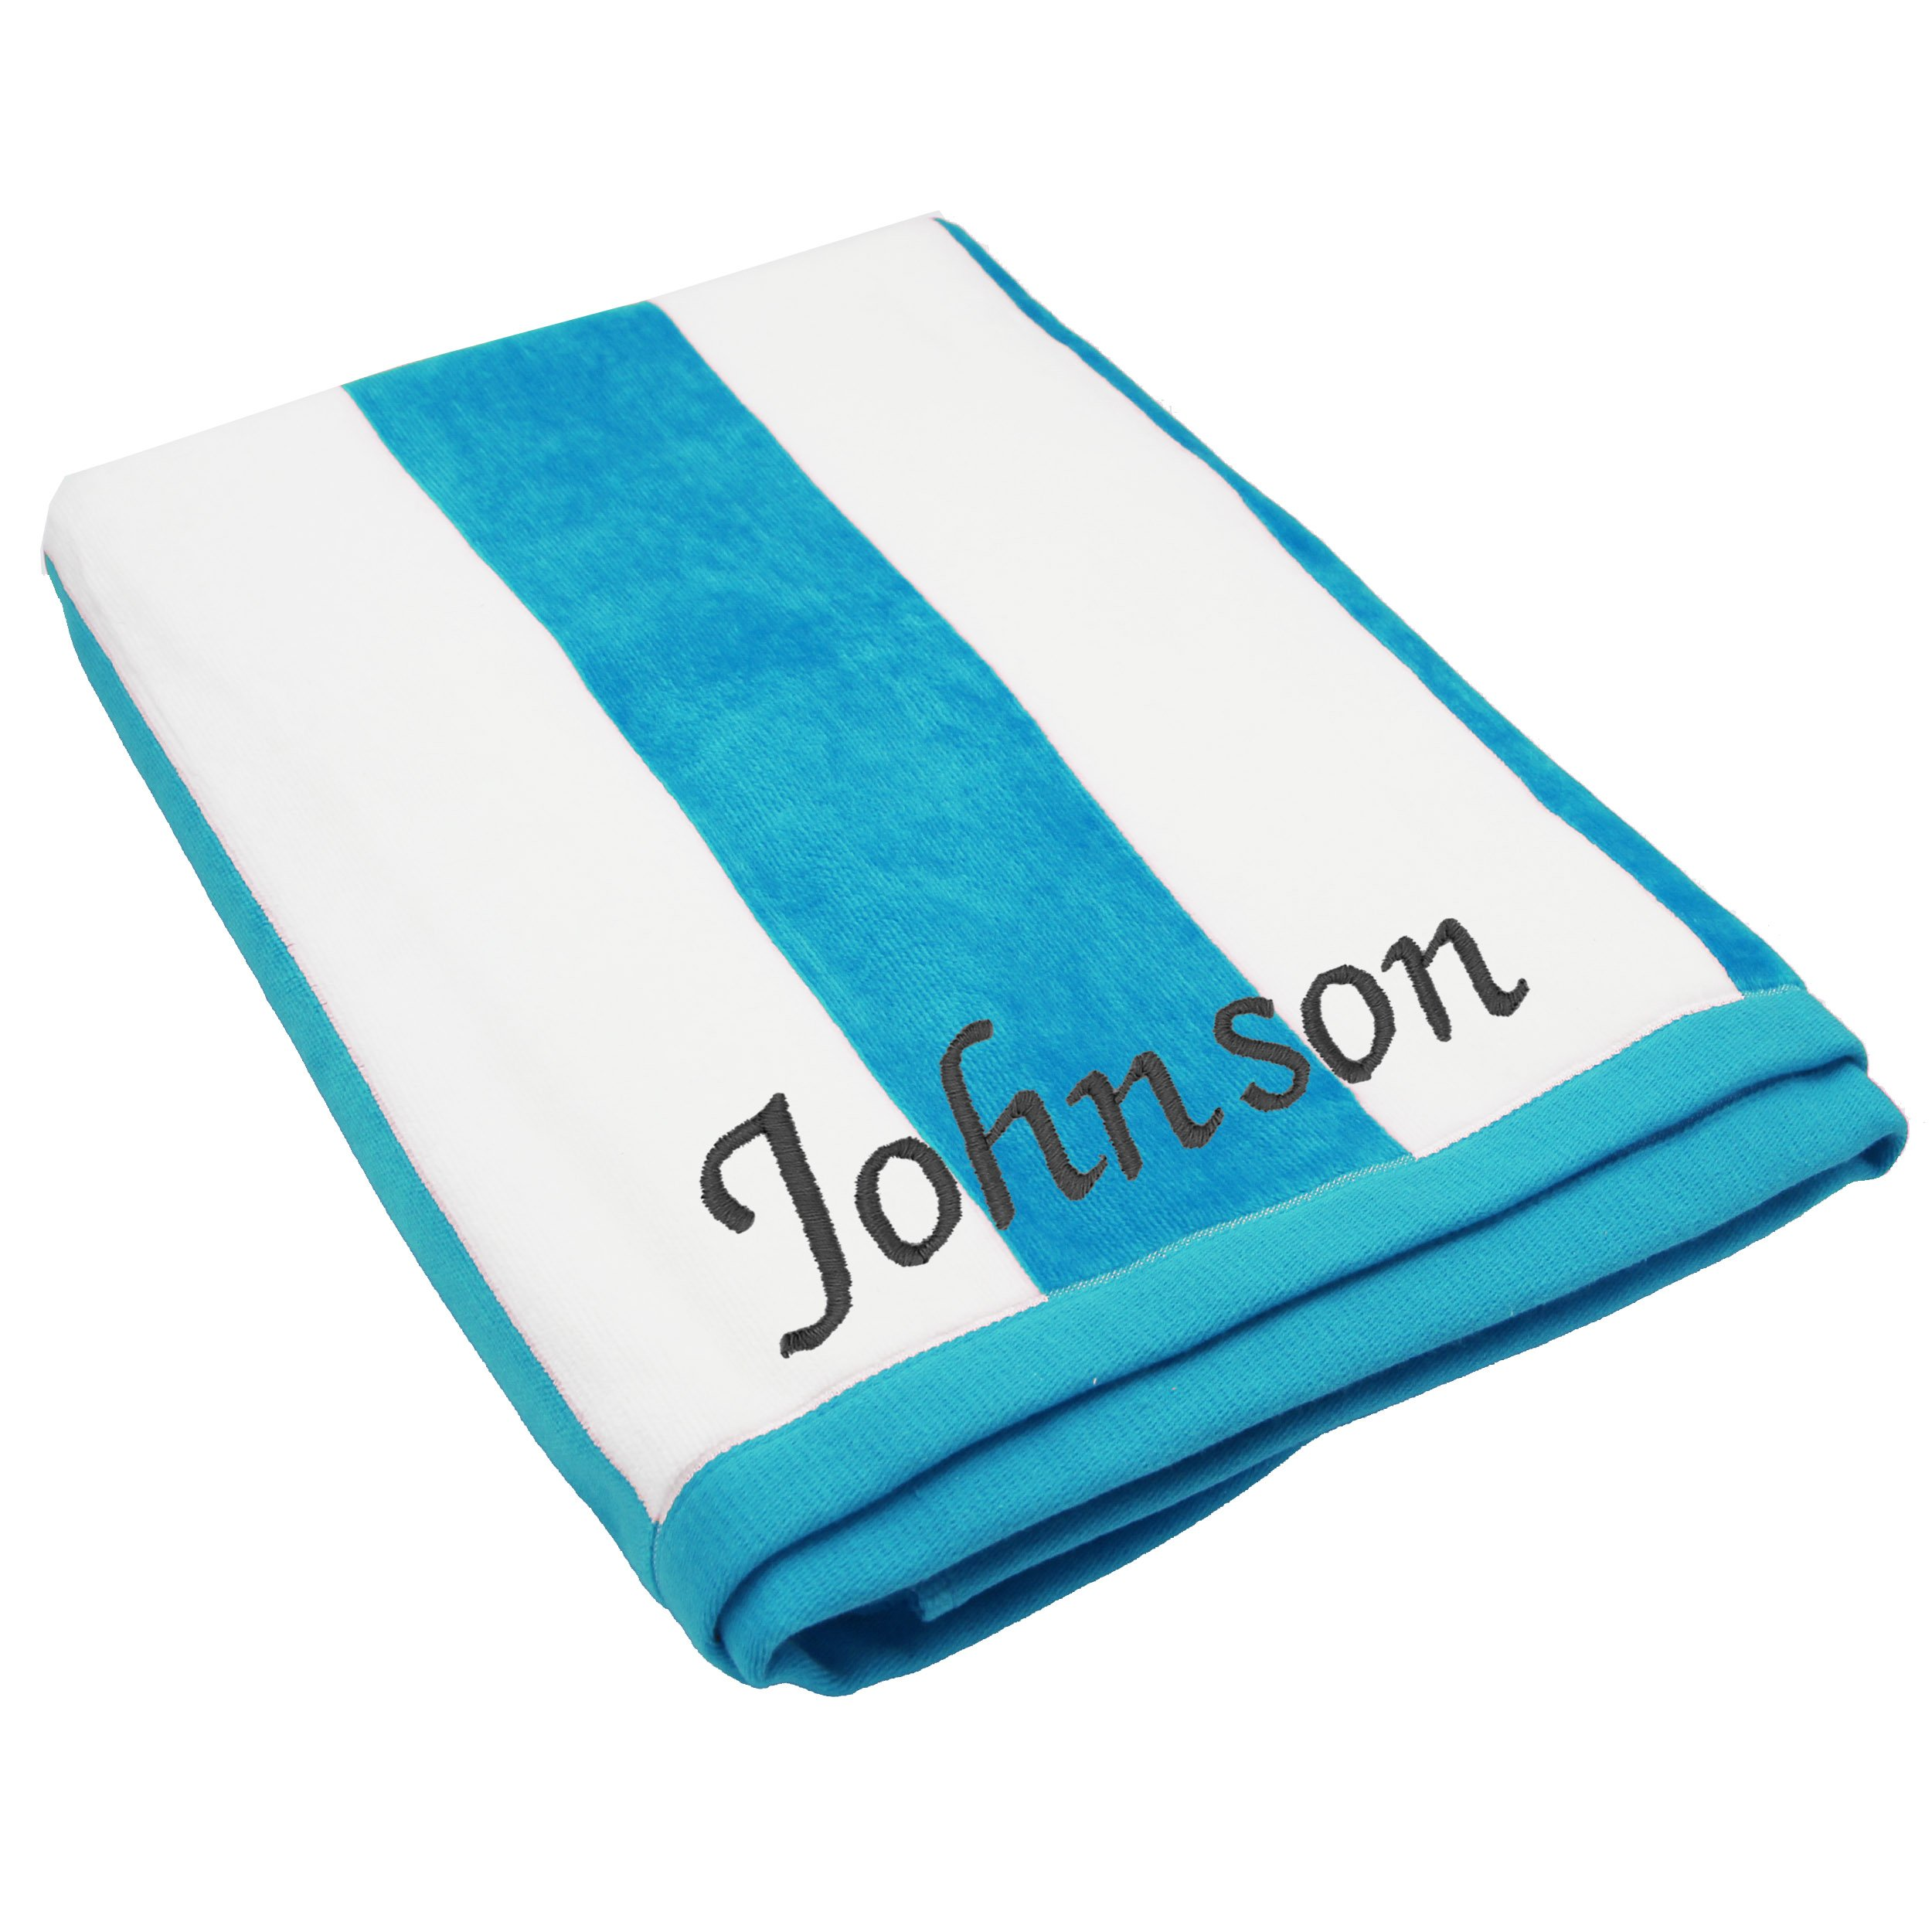 The Wedding Party Store Premium Personalized Striped Cabana Beach Towel 35'' x 60'' - Monogrammed Pool Towels Gift - Custom Embroidered for Free (Turquoise)